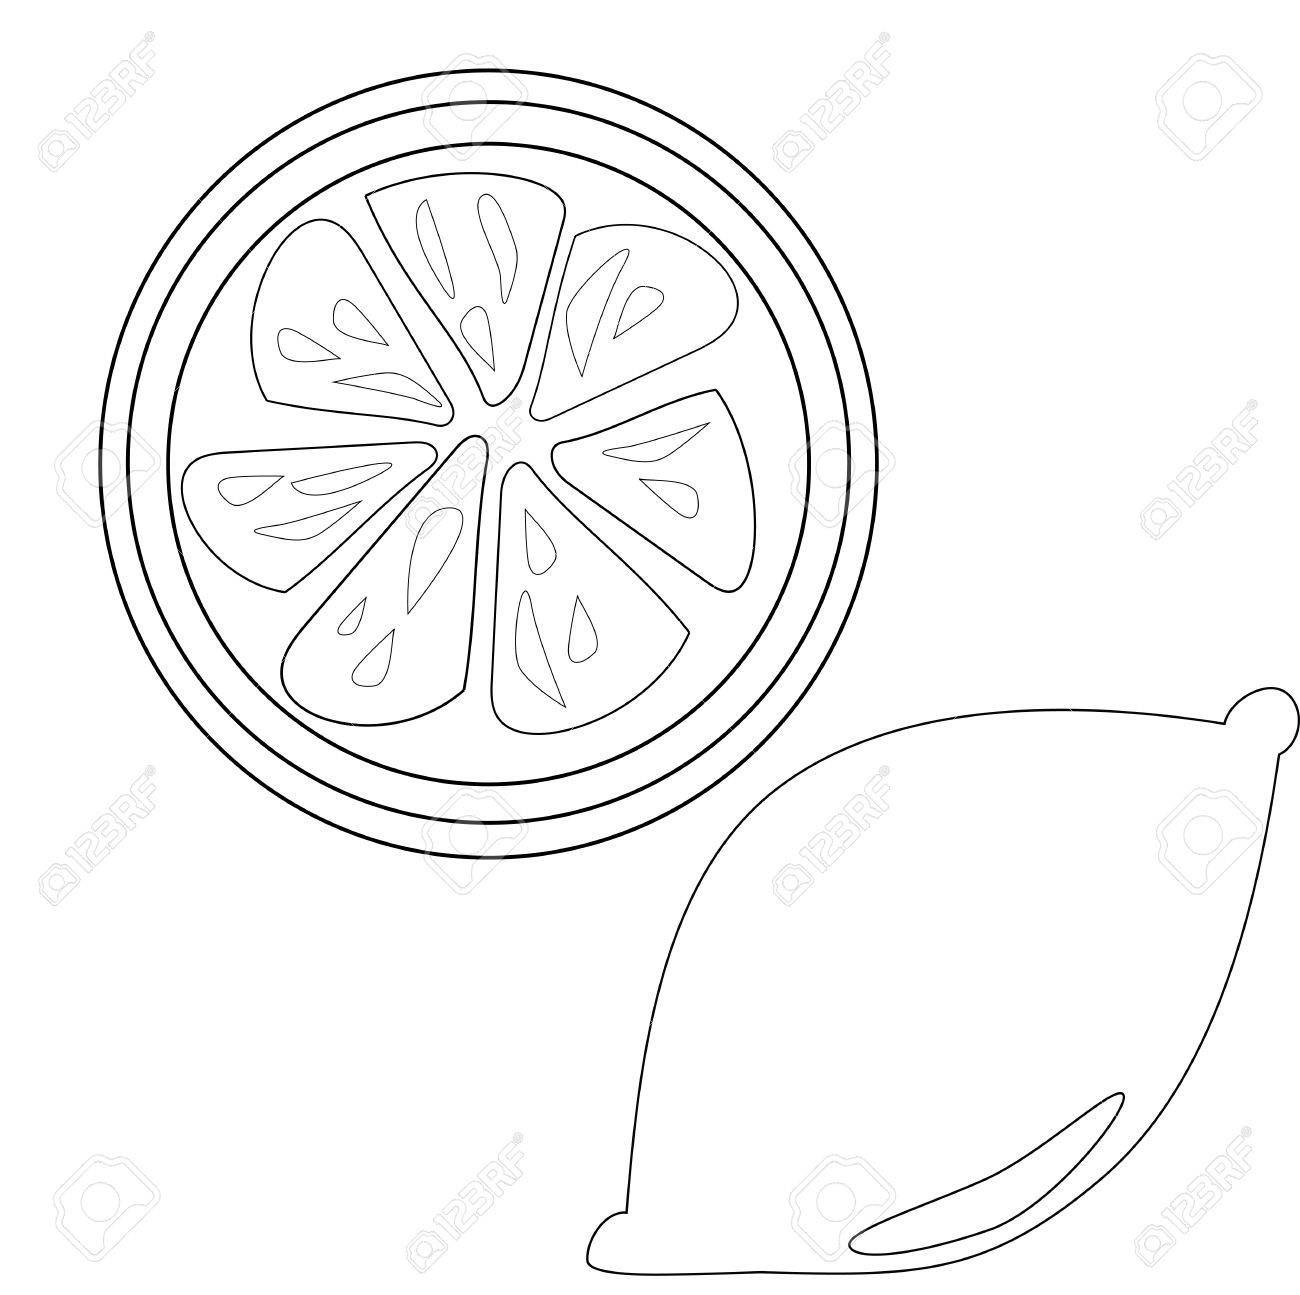 Lemon Slice Outline